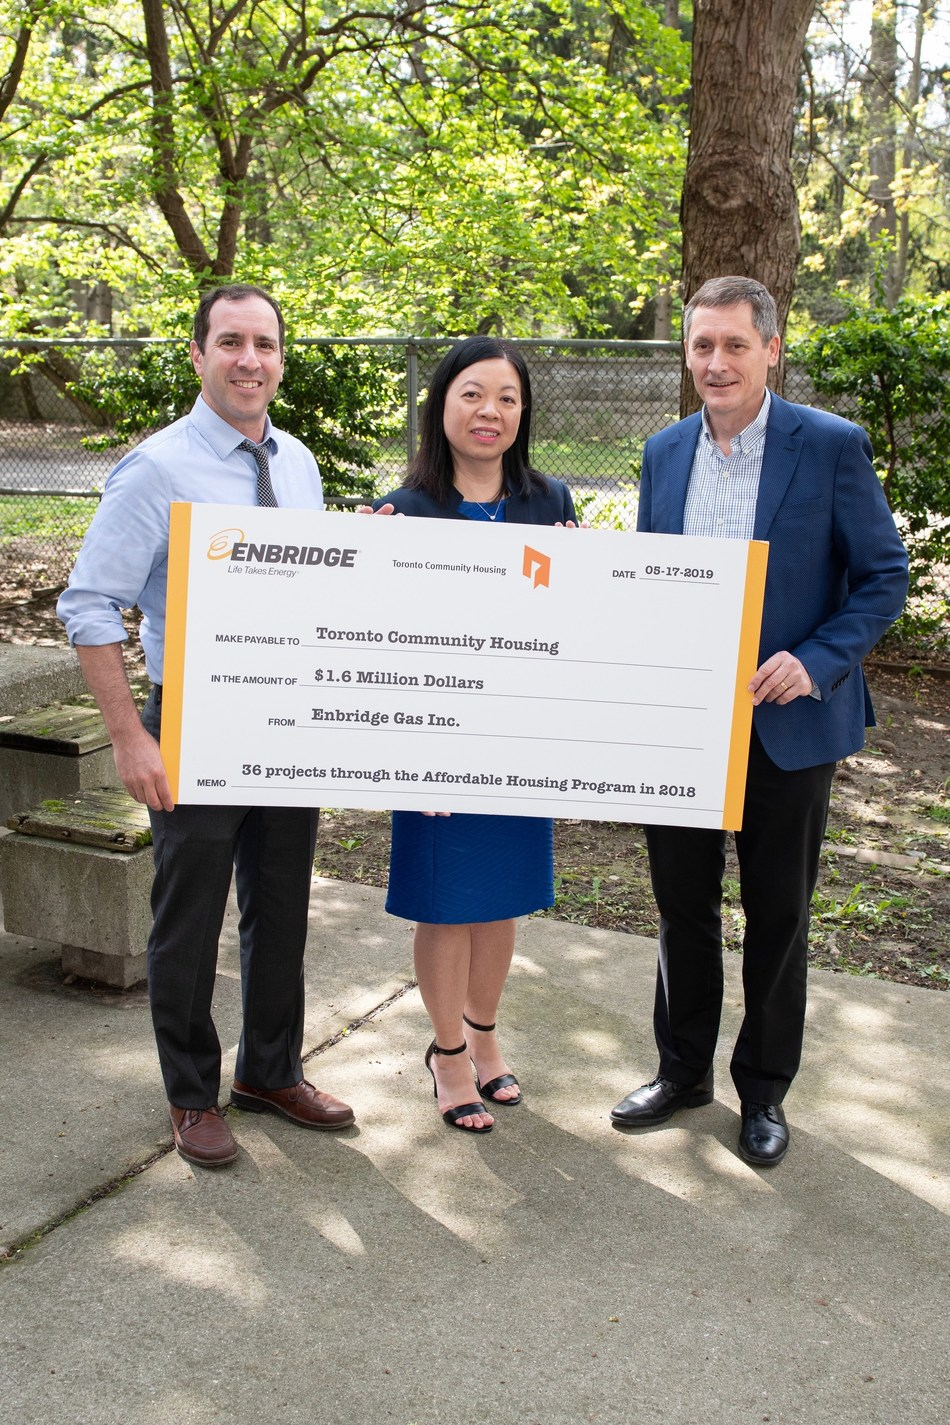 Left to Right: Ward 12 Councillor Josh Matlow, Rose-Ann Lee, Chief Financial Officer of Toronto Community Housing, and Jim Sanders, Senior Vice President, Enbridge Gas, during Enbridge's $1.6 million incentive cheque presentation to Toronto Community Housing for the completion of 36 energy efficiency projects at buildings across Toronto in 2018. (CNW Group/Enbridge Gas Inc.)